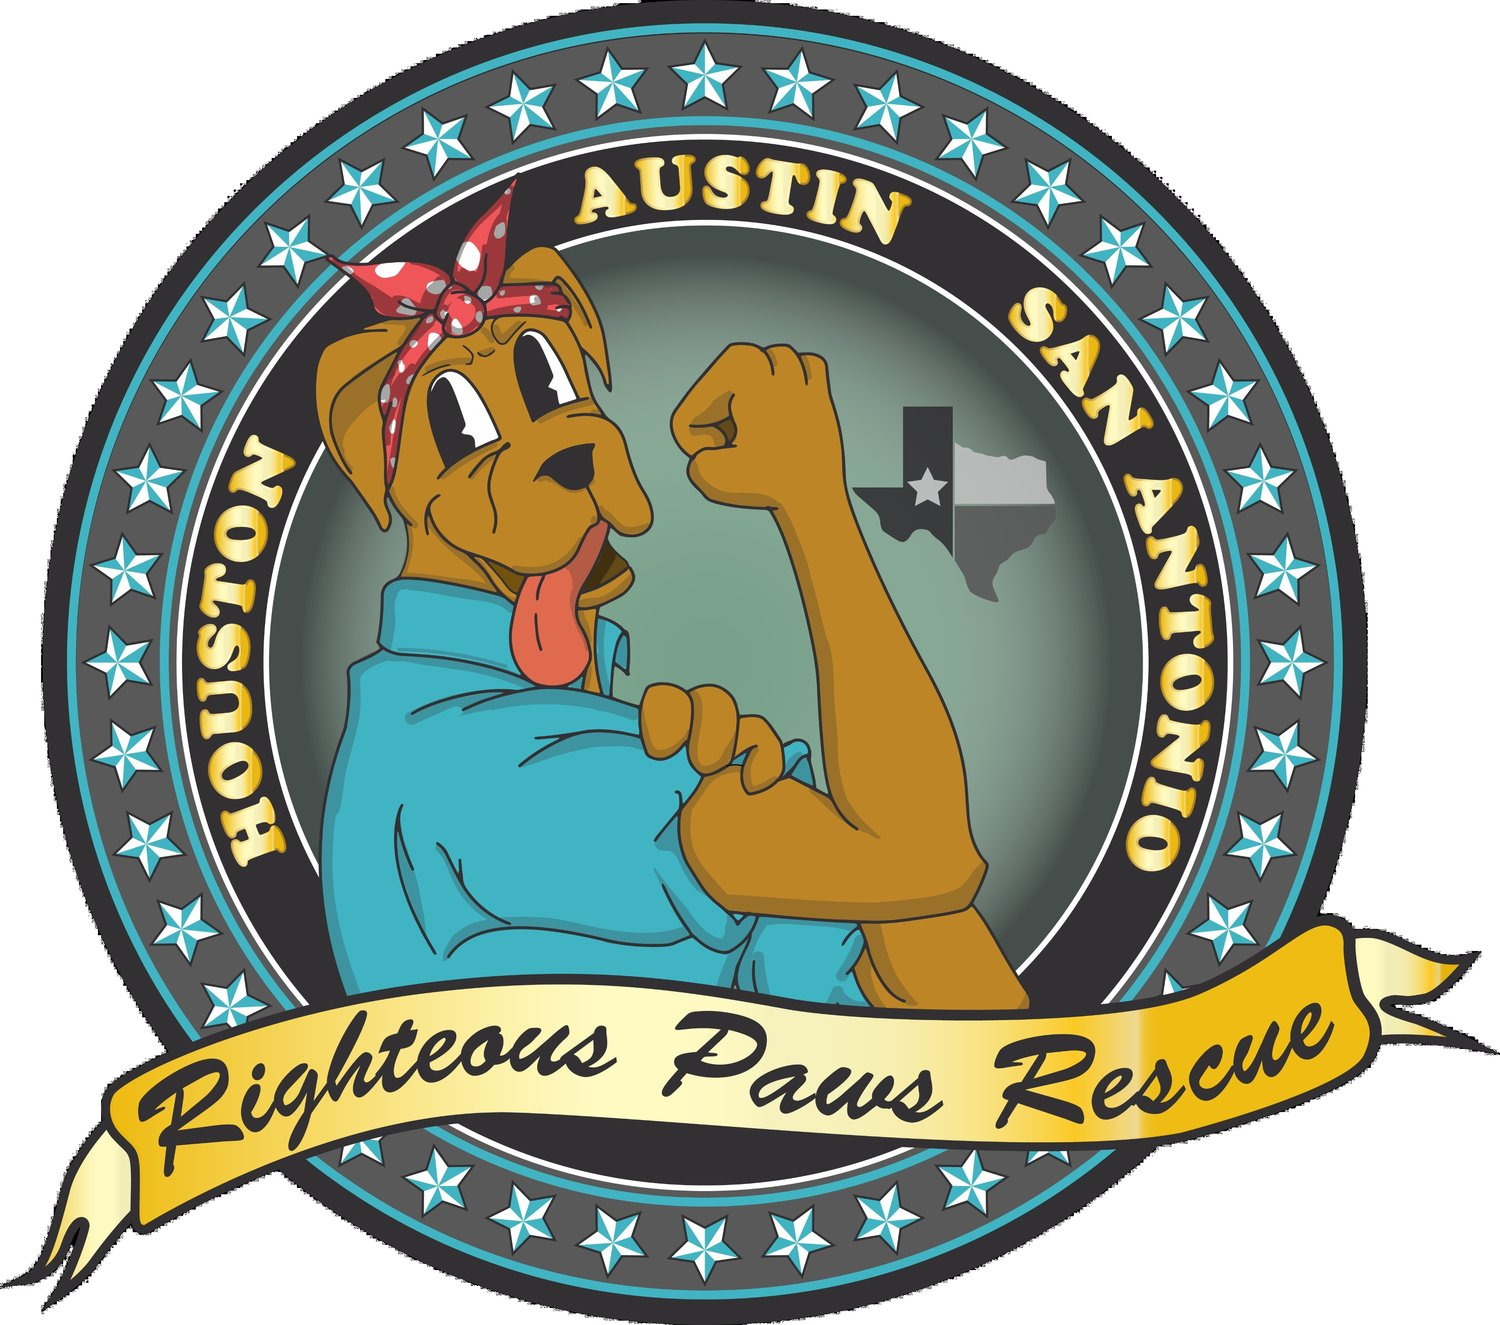 Righteous Paws Rescue